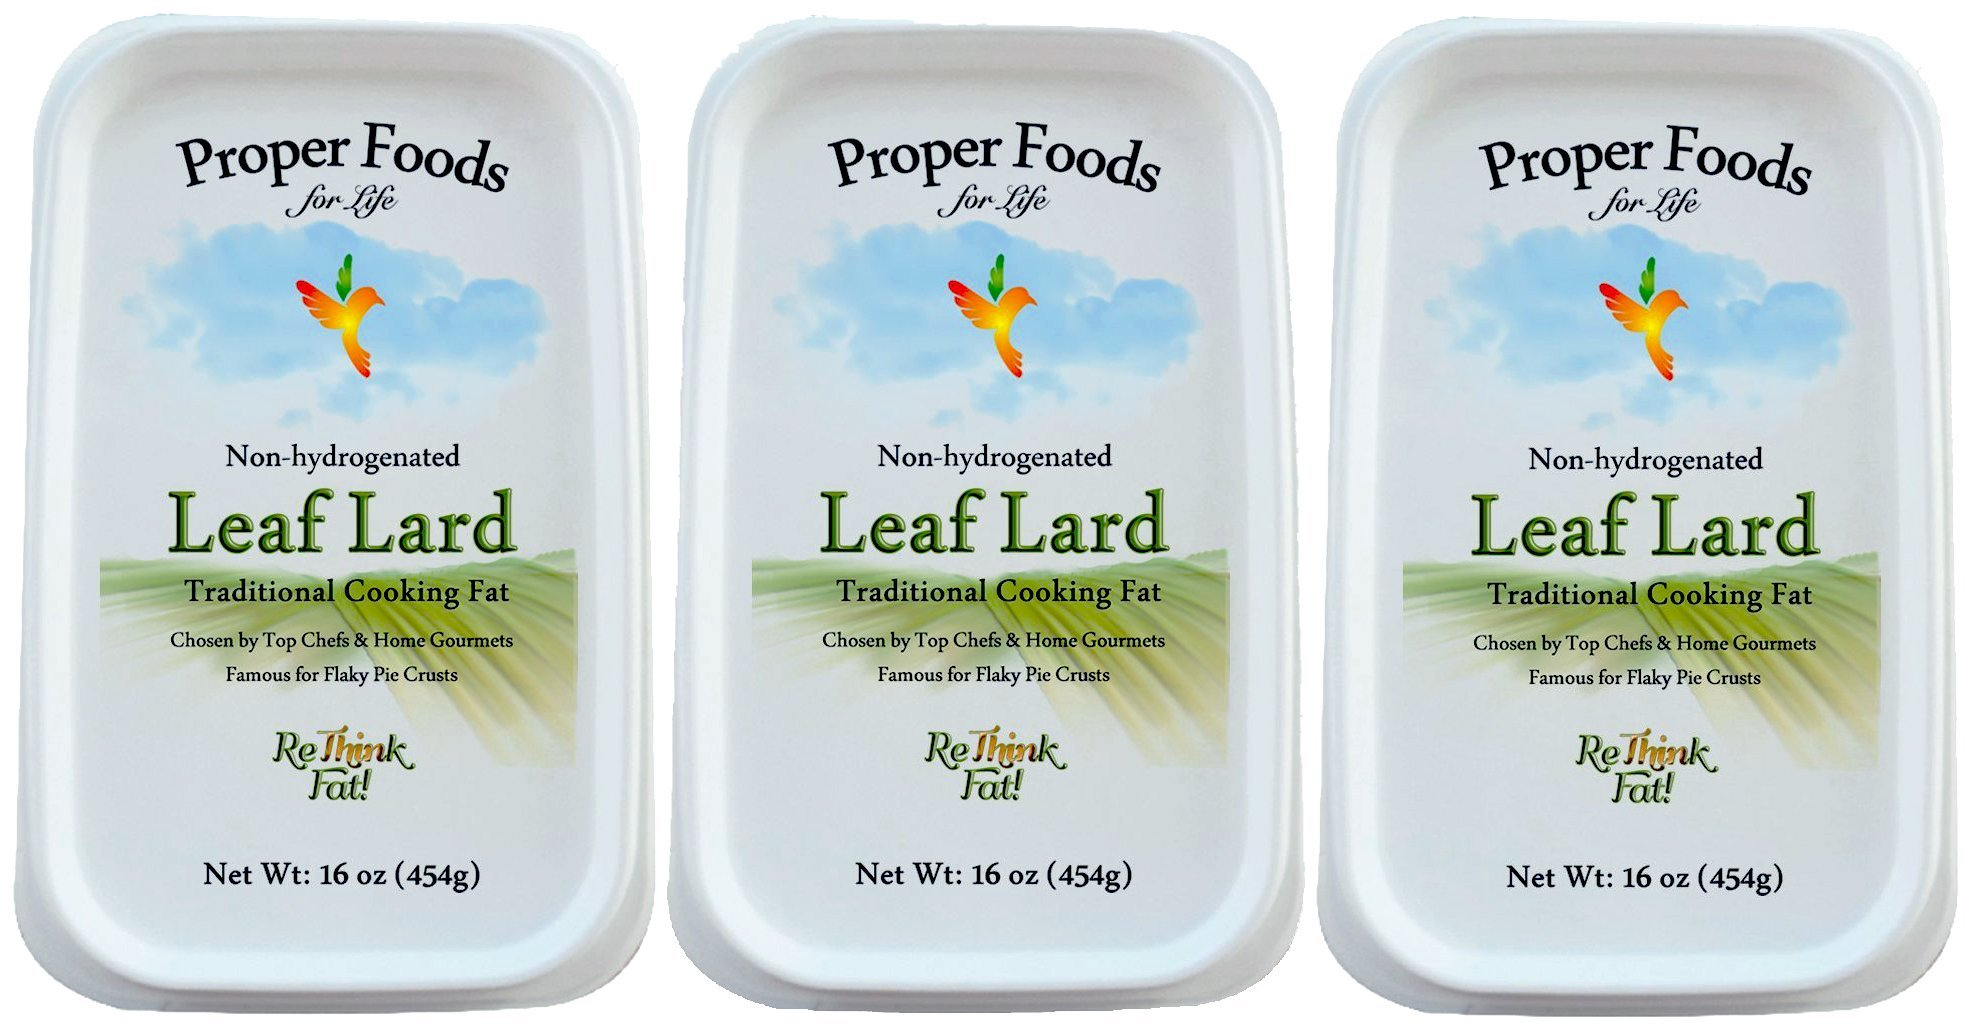 100% Pure Pork Leaf Lard - Non-Hydrogenated - Pasture Raised - For Cooking, Baking and Frying - One Pound Tub (16 oz) - by Proper Foods - (Pack of 3)